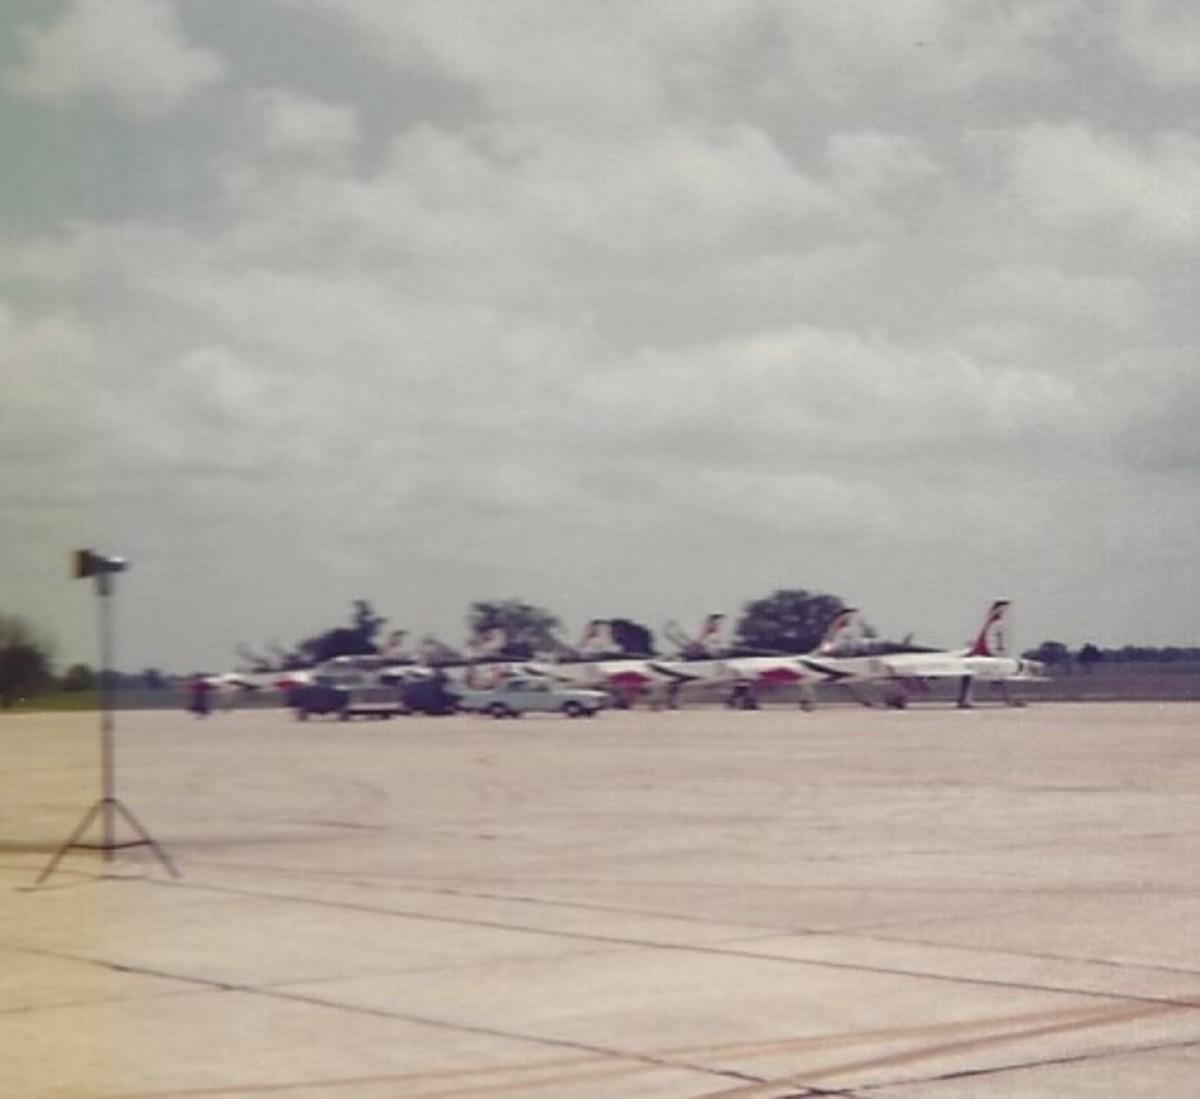 The T-38s of the USAF Thunderbirds, Randolph AFB, TX, 1980.